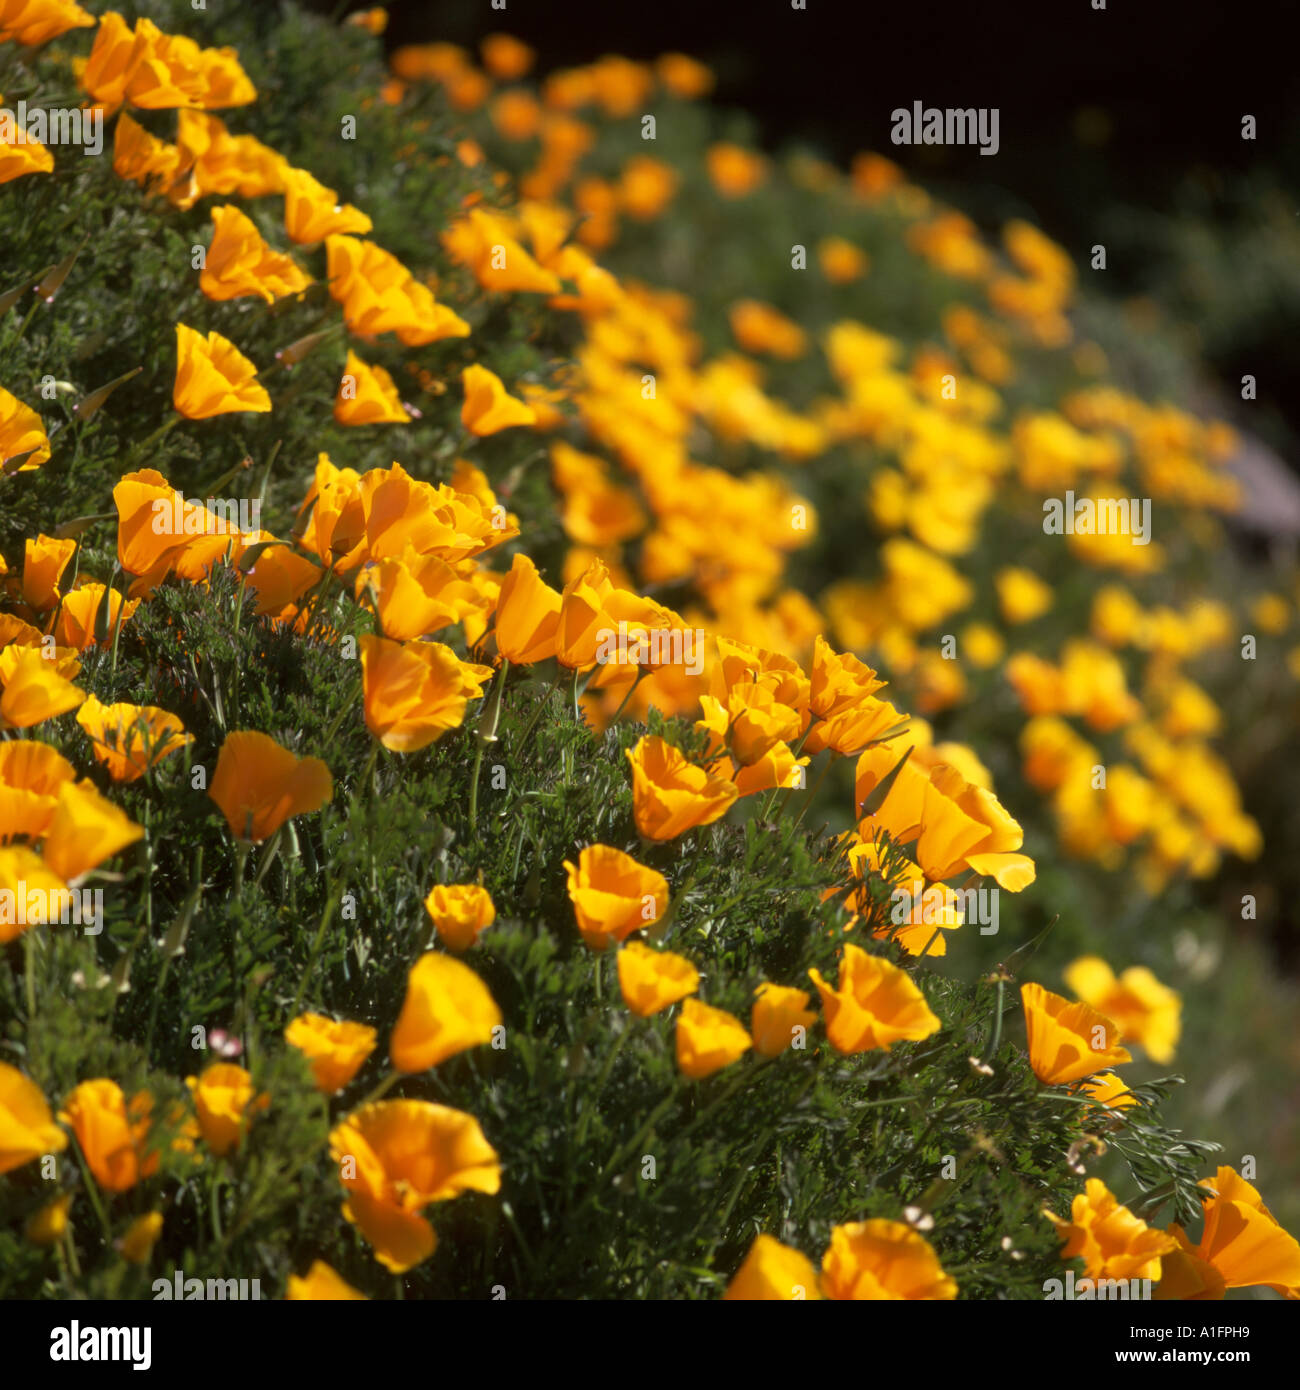 Yellow flowers growing on tenerife canary island spain stock photo yellow flowers growing on tenerife canary island spain mightylinksfo